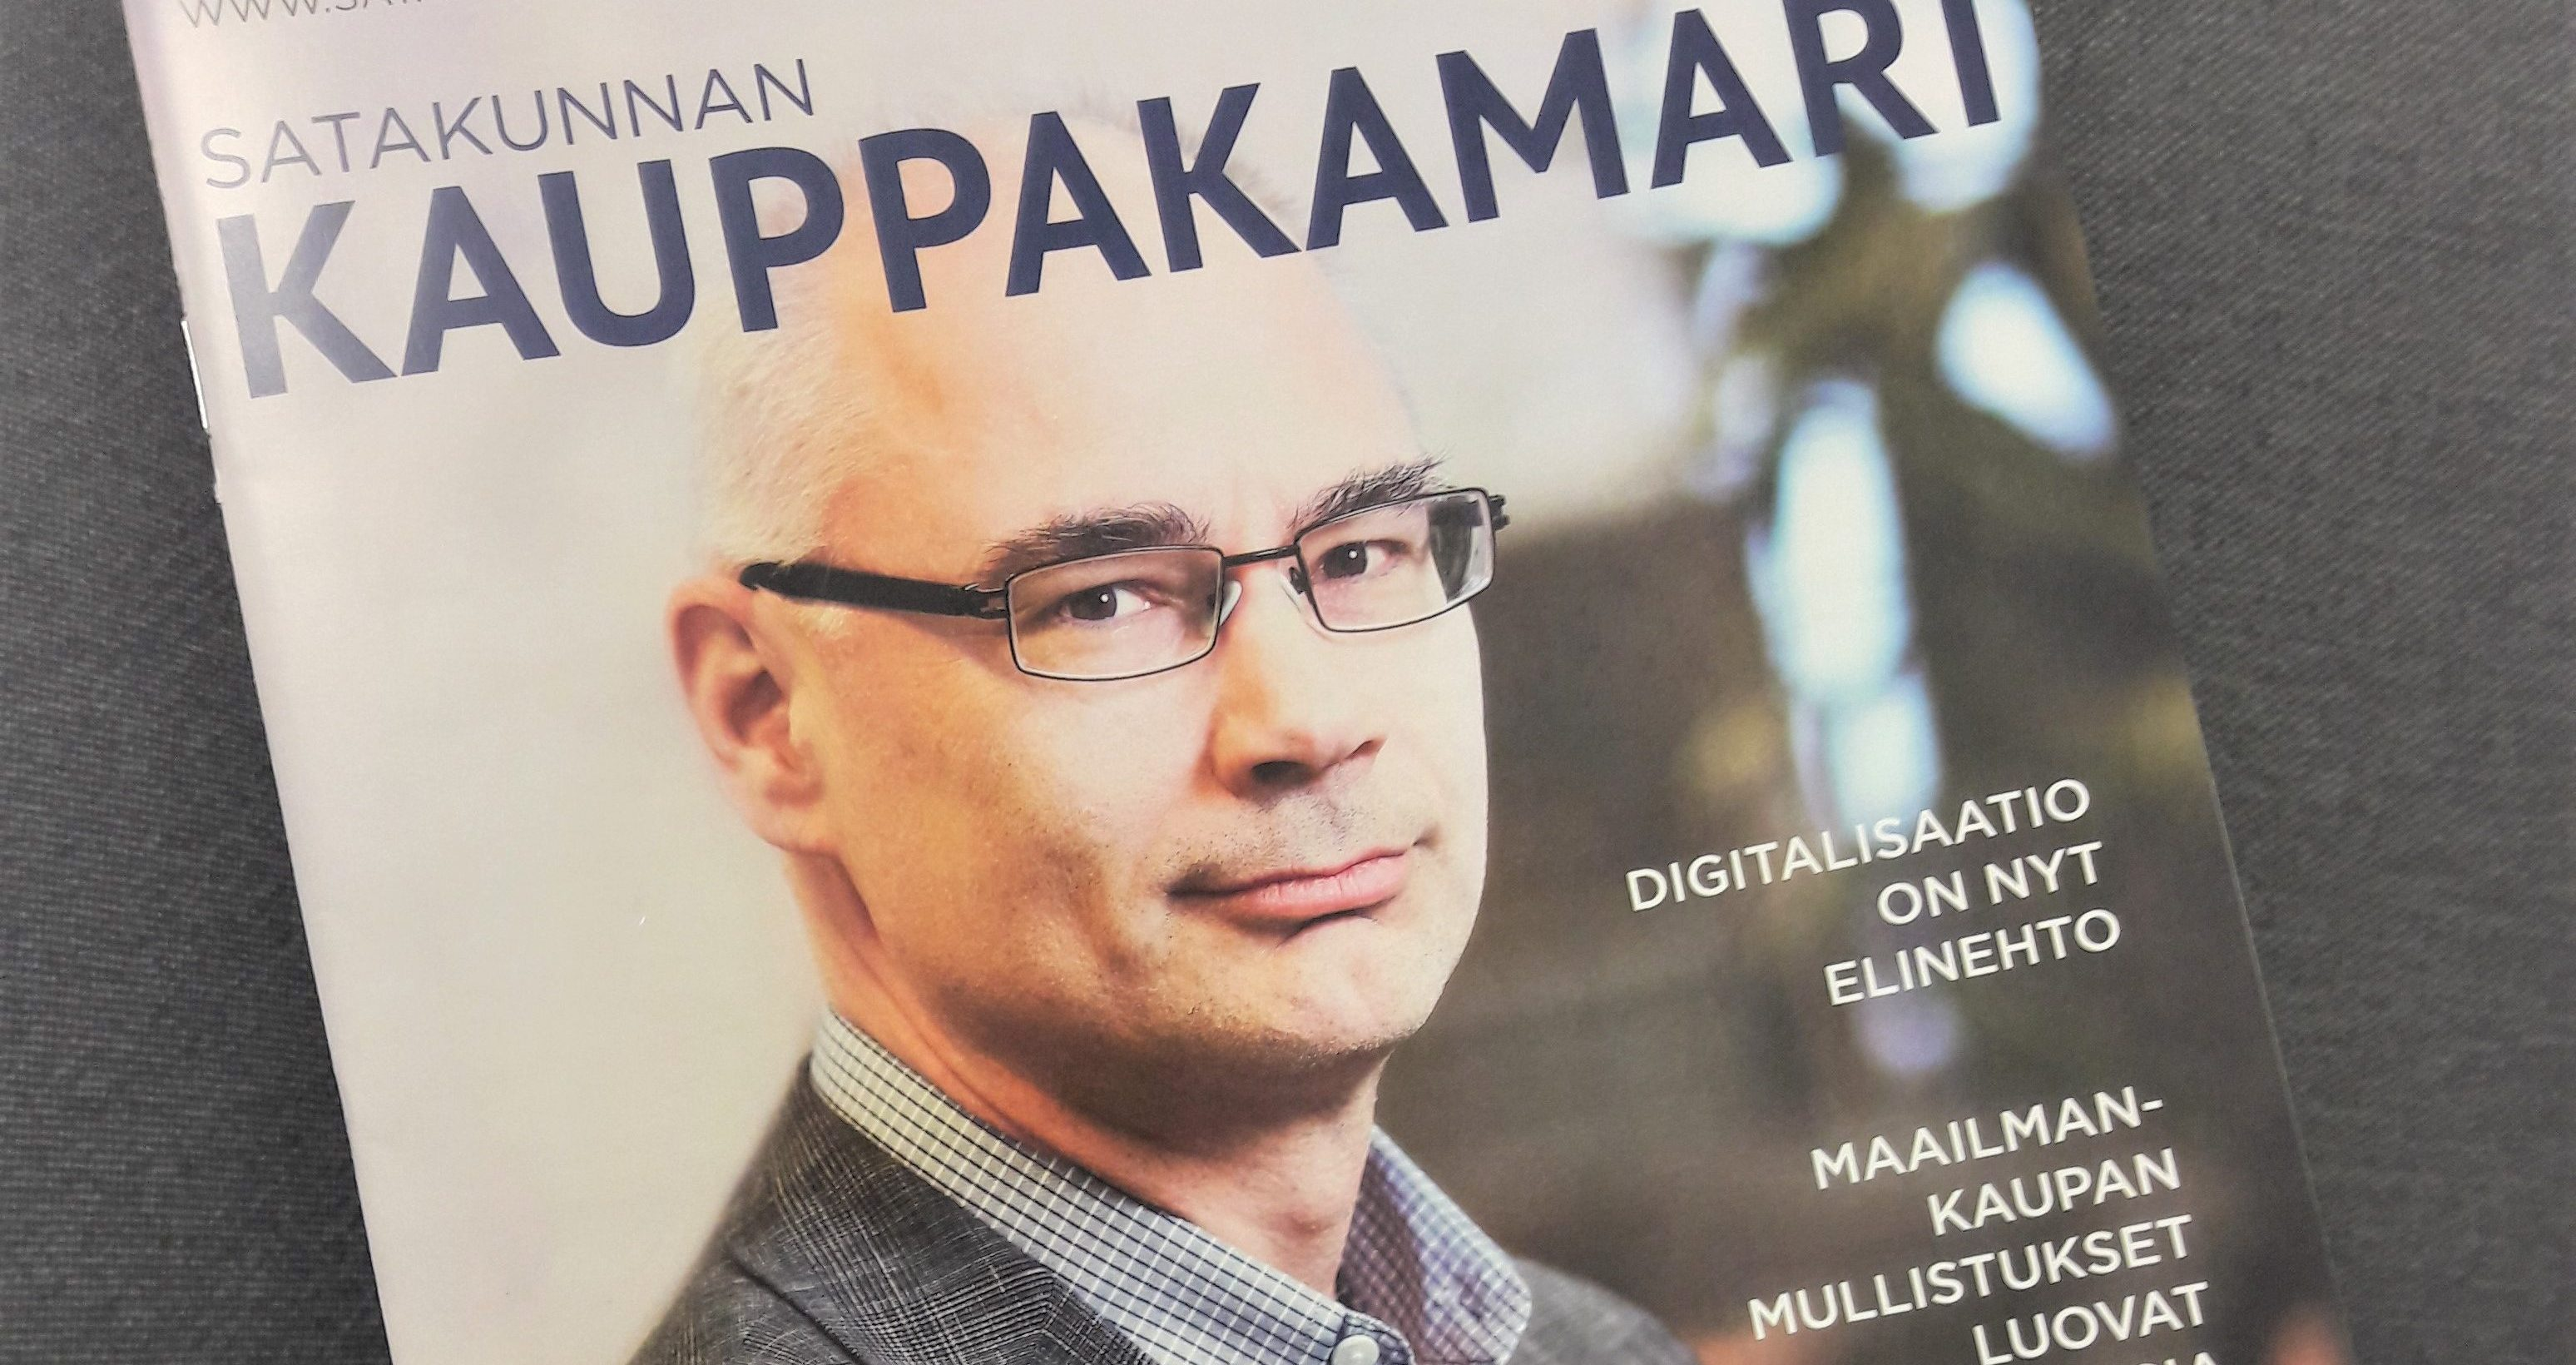 Elinar's CEO Mikko Hörkkö writes about digitalisaatio in magazine